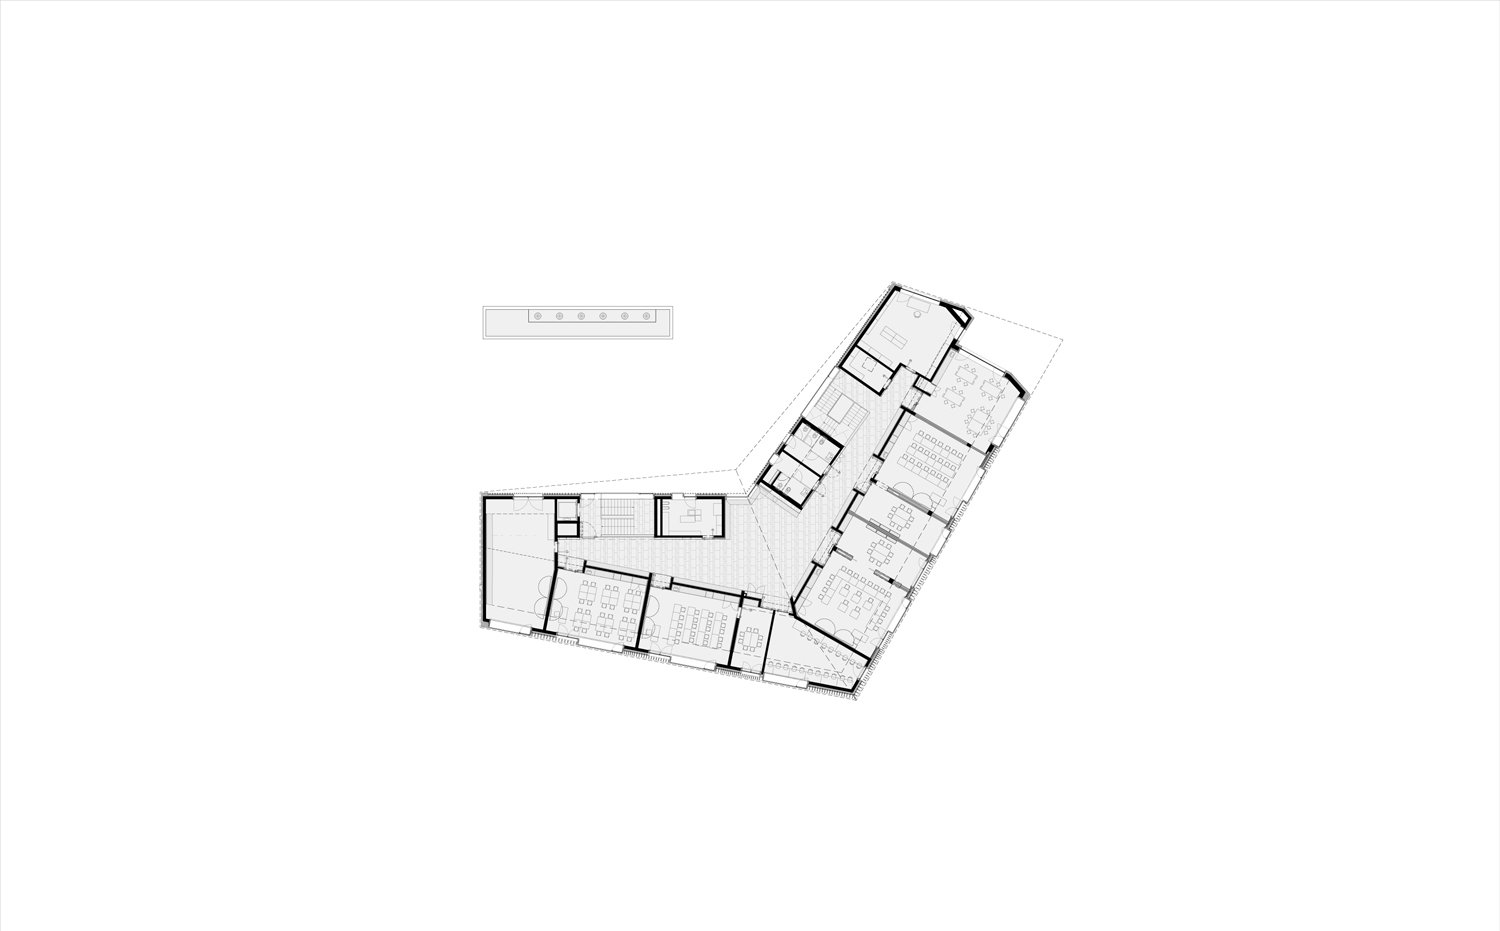 Second floor plan: Elementary School MoDusArchitects}